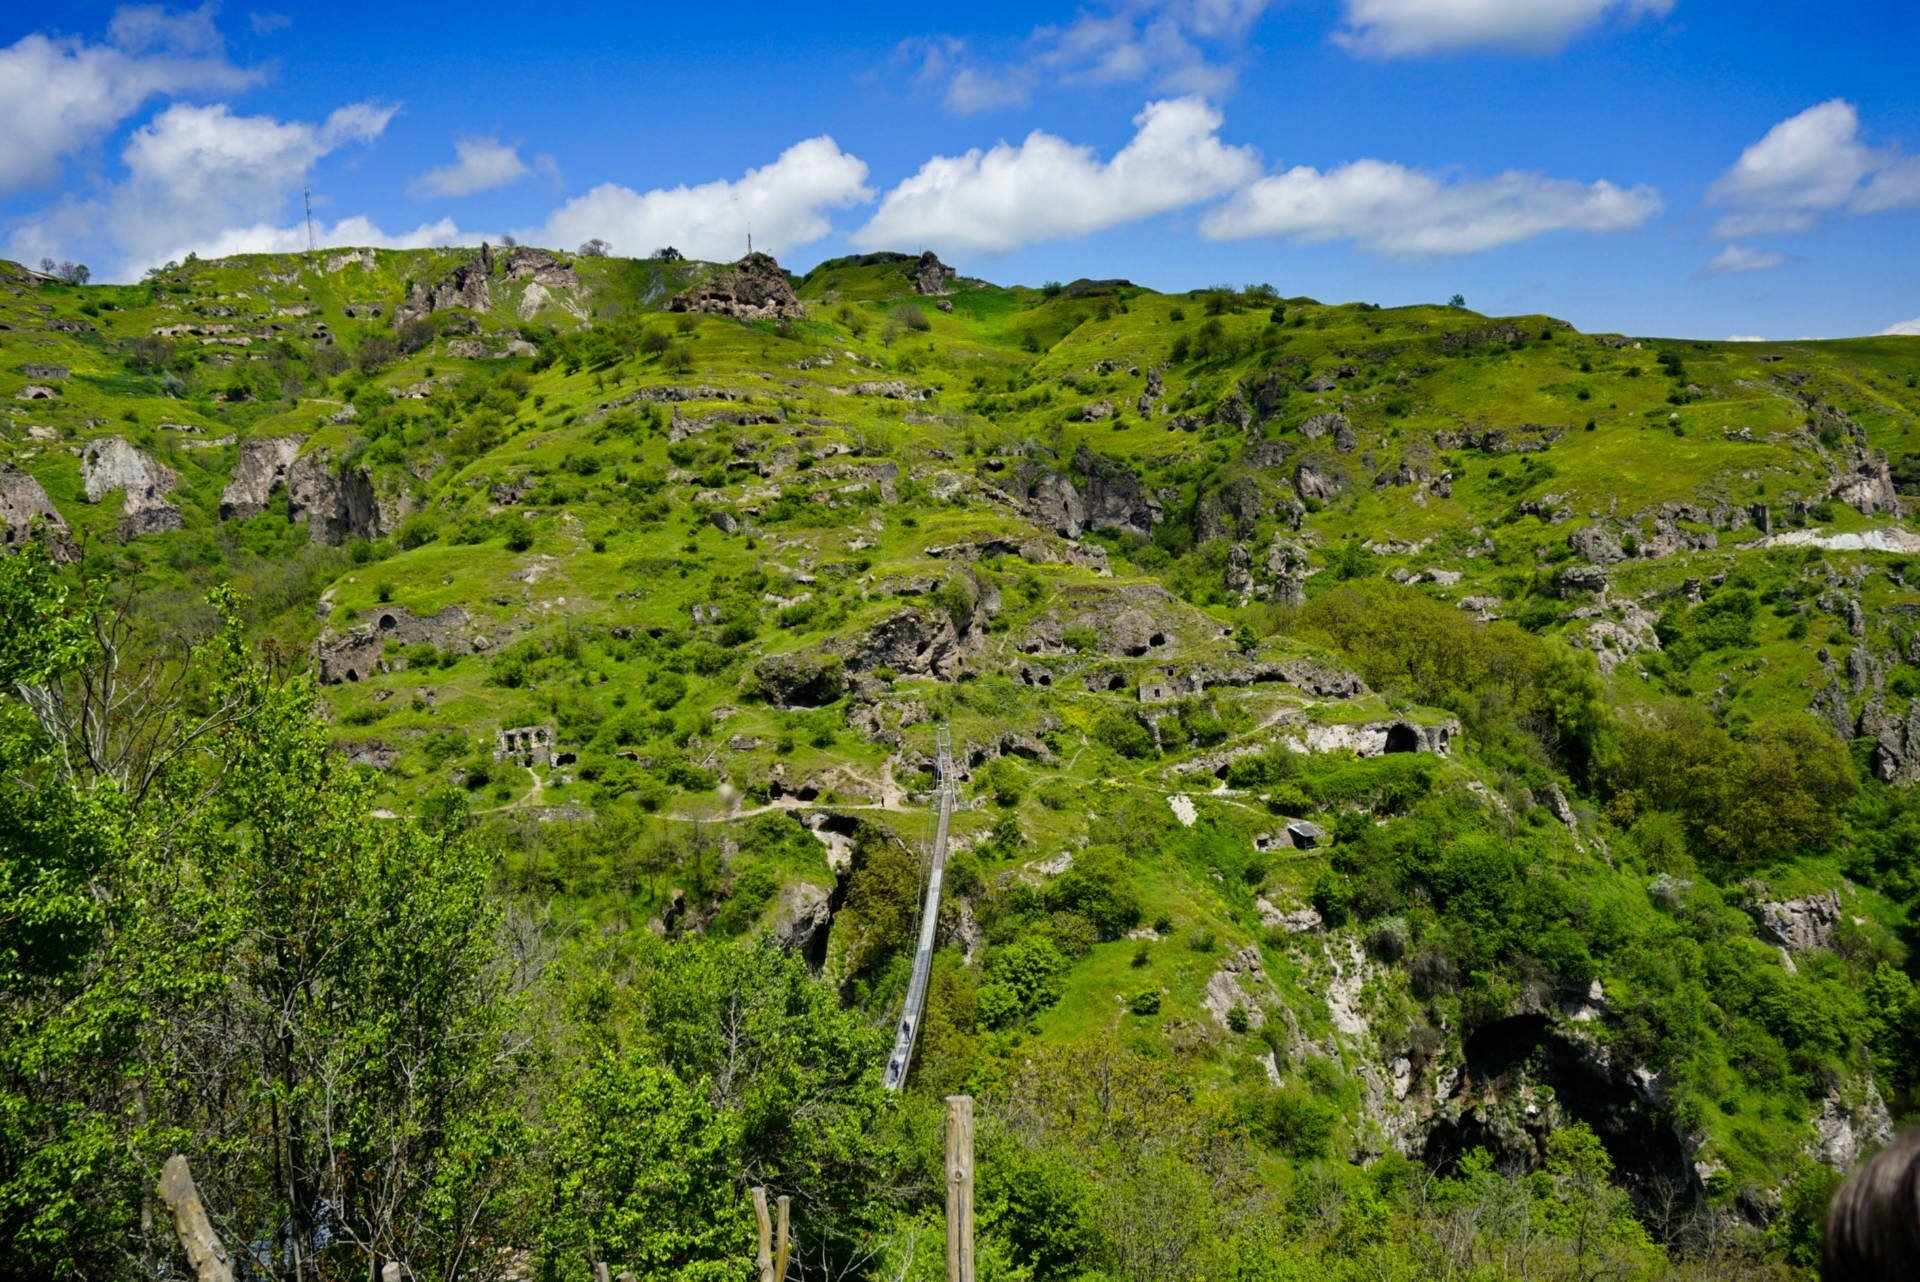 Old Khndzoresk cave village, Armenia - Experiencing the Globe